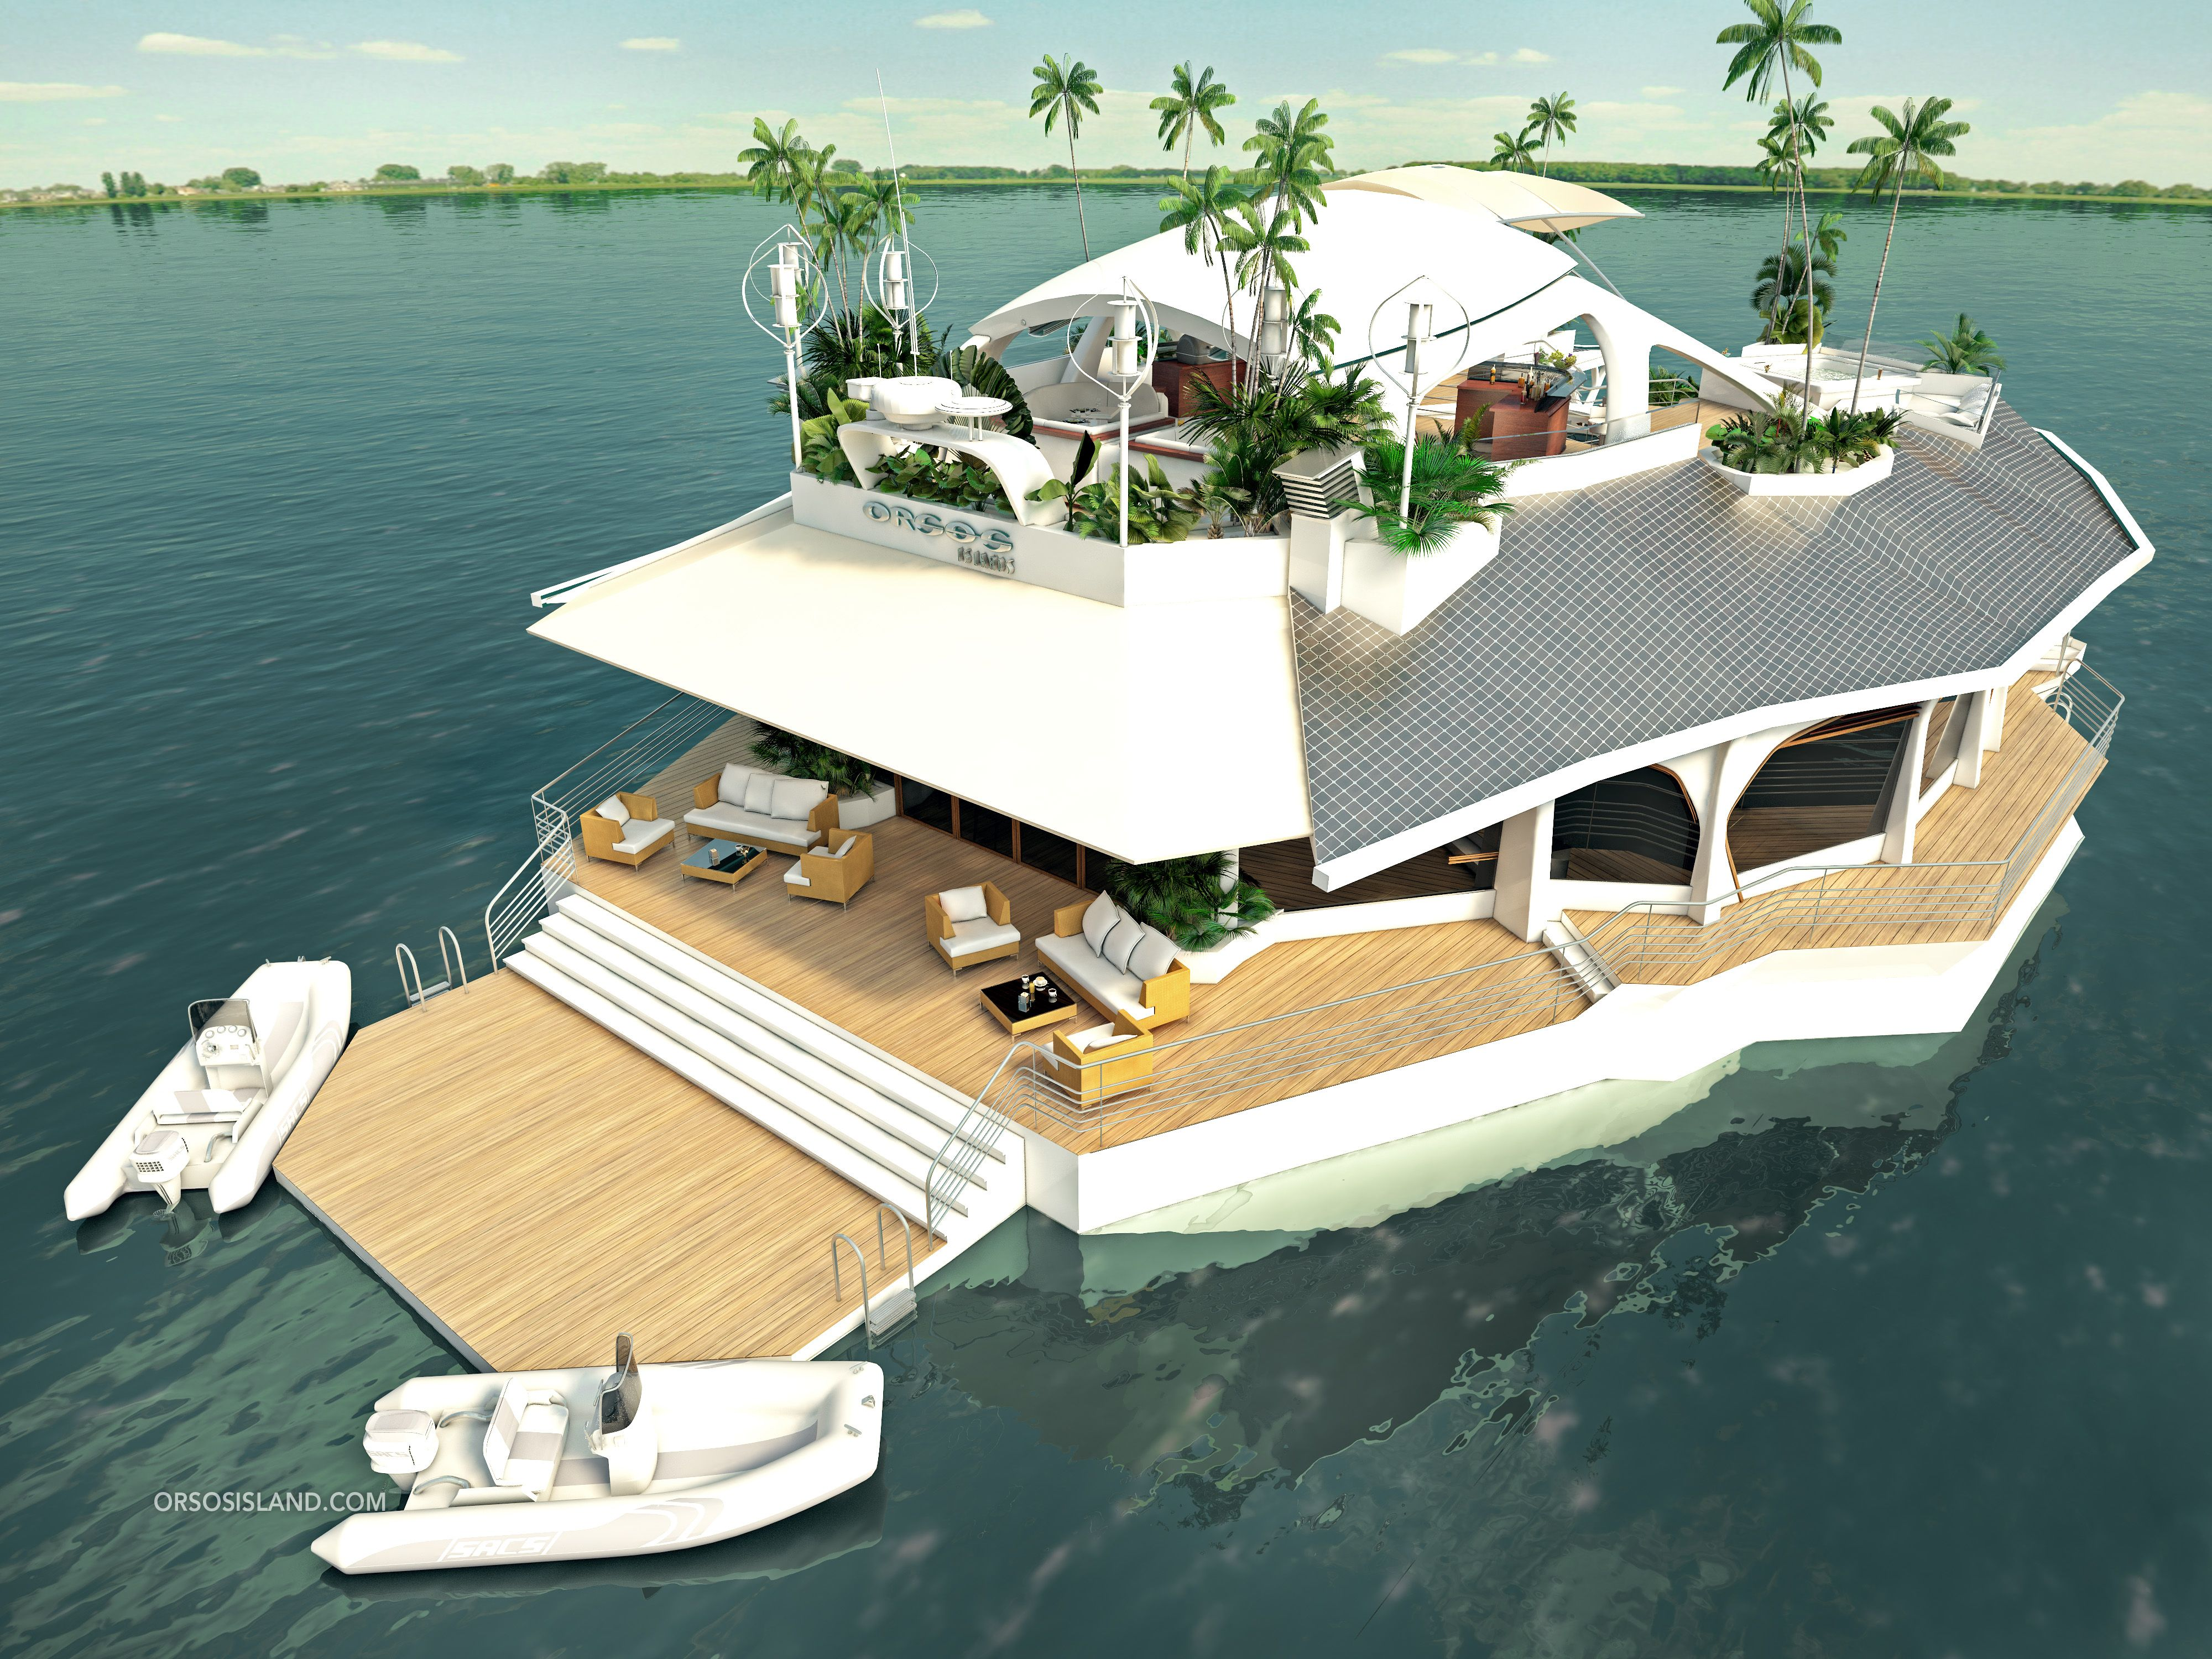 Superior Boasting Six Double Bedrooms And M² Of Living Space, The Orsos Island Was  Designed To Combine The Best Of Mainland Real Estate And A Super Yacht At A  . Design Ideas